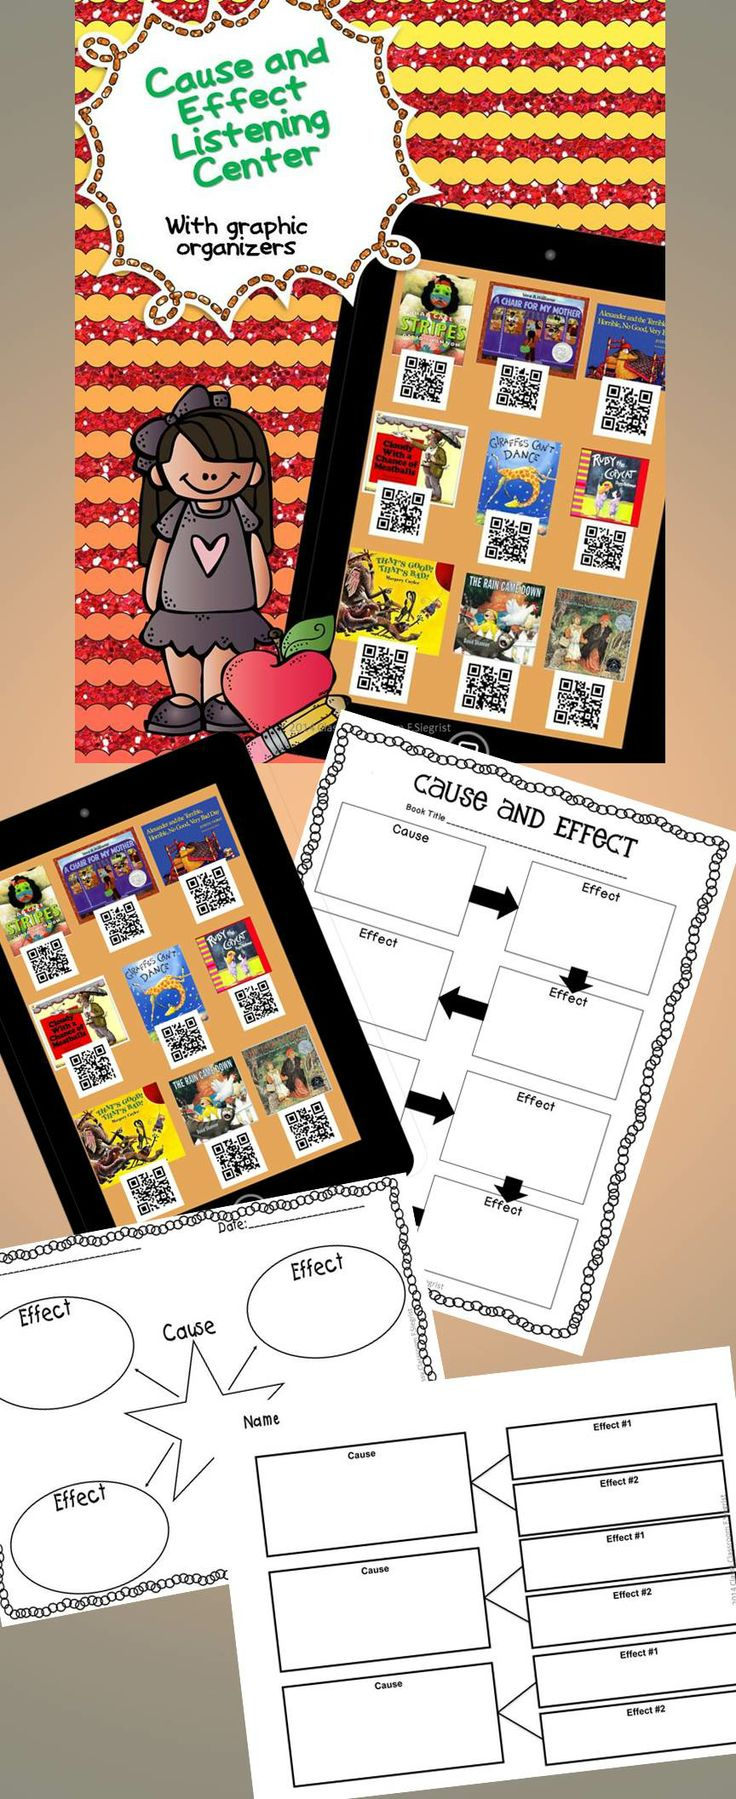 Cause and Effect Listening Center with Graphic Organizers  Great listening centers or for your early finishers!! If you are fortunate to have ipods, ipads, or tablets this is a wonderful way to practice cause and effect while listening to great books. You will need to have a QR Scanner APP downloaded on your device to make this work.